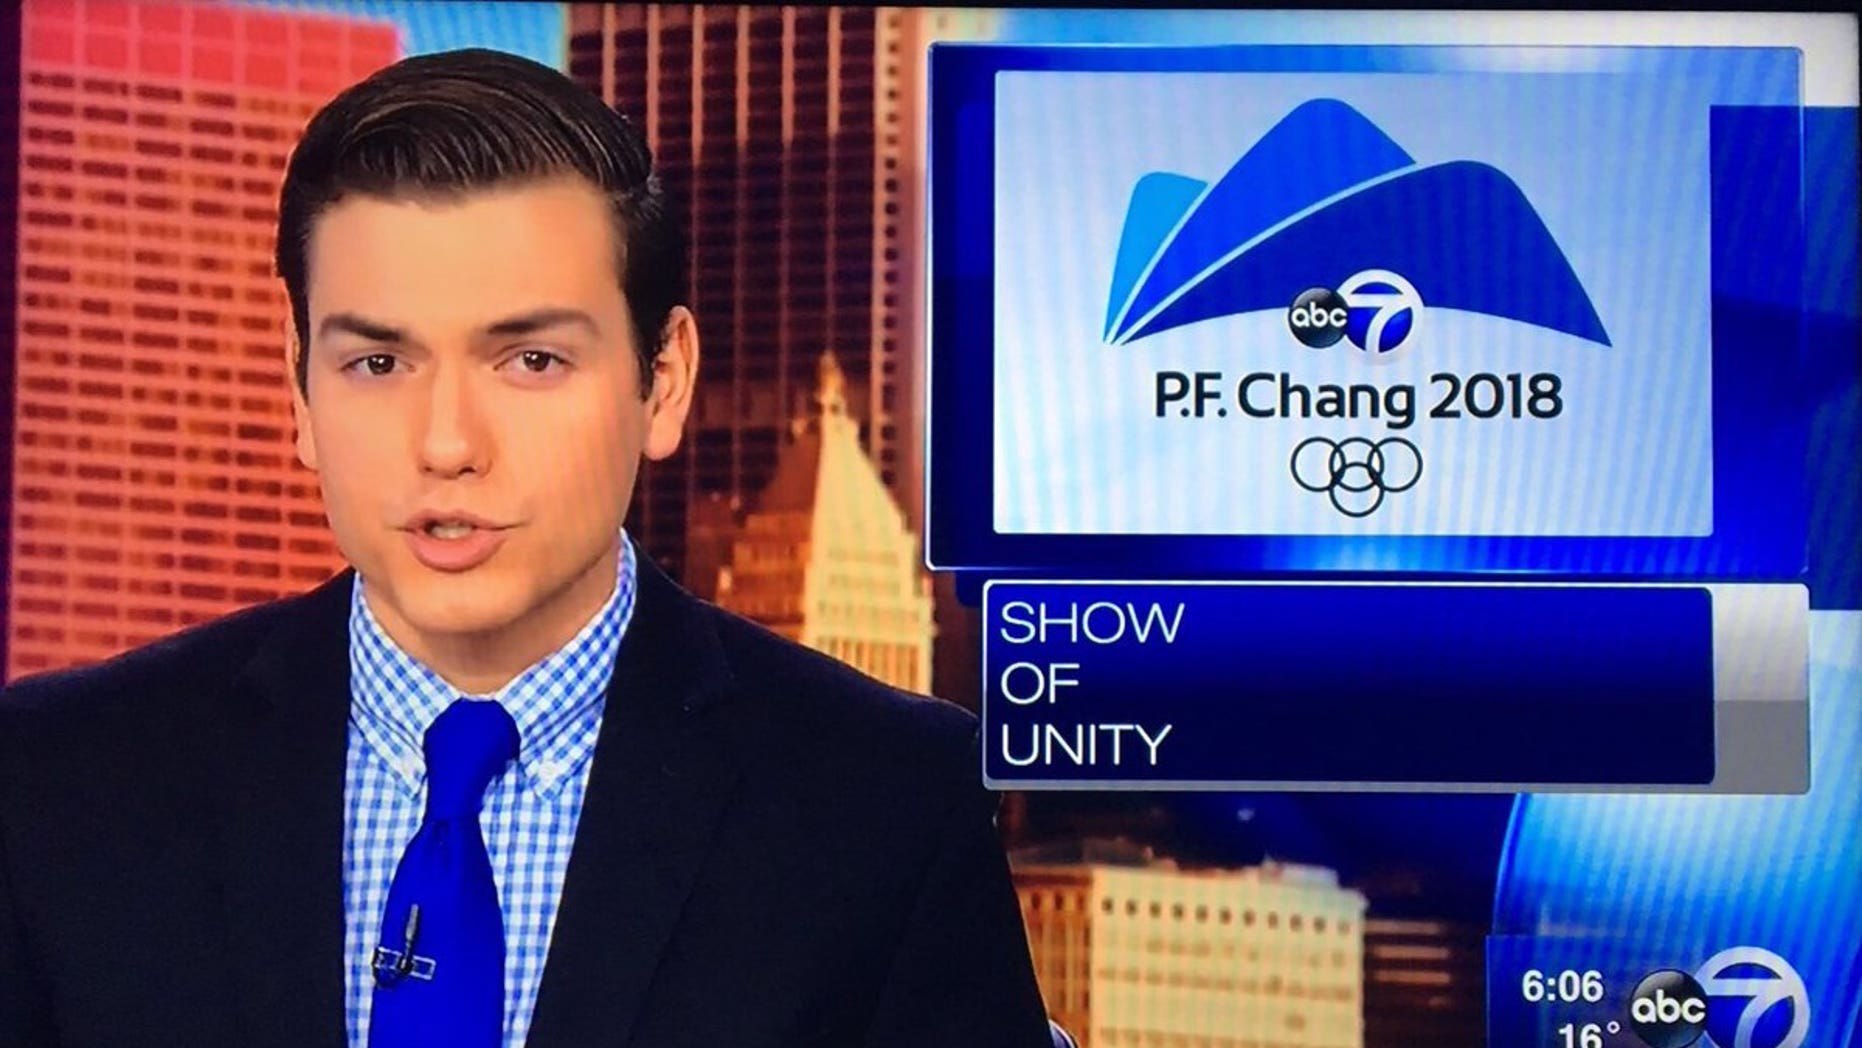 An ABC affiliate in Chicago aired a graphic that mixed up Pyeongchang with P.F. Chang's.